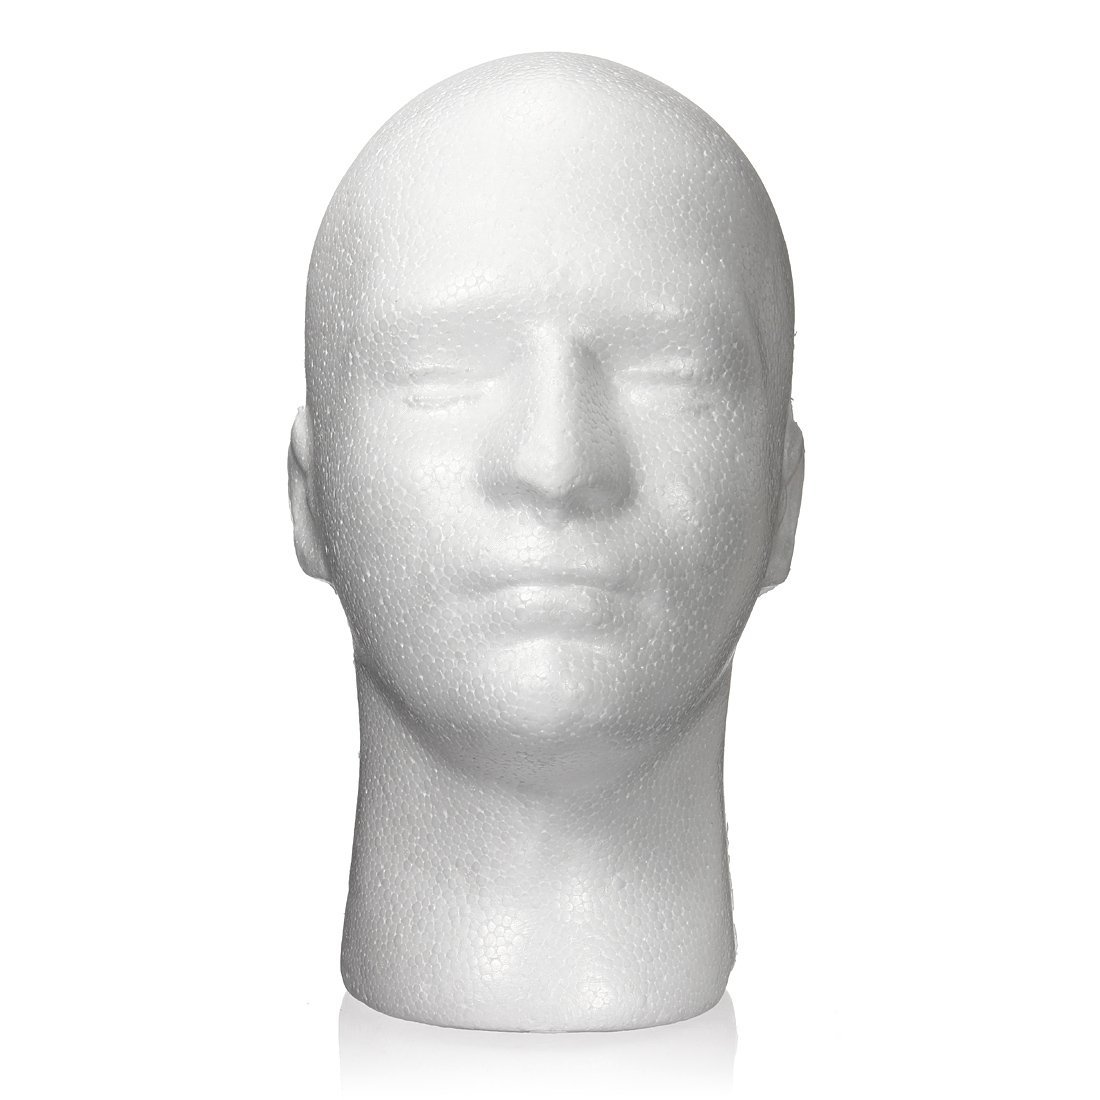 Mannequin Male Styrofoam Head Display